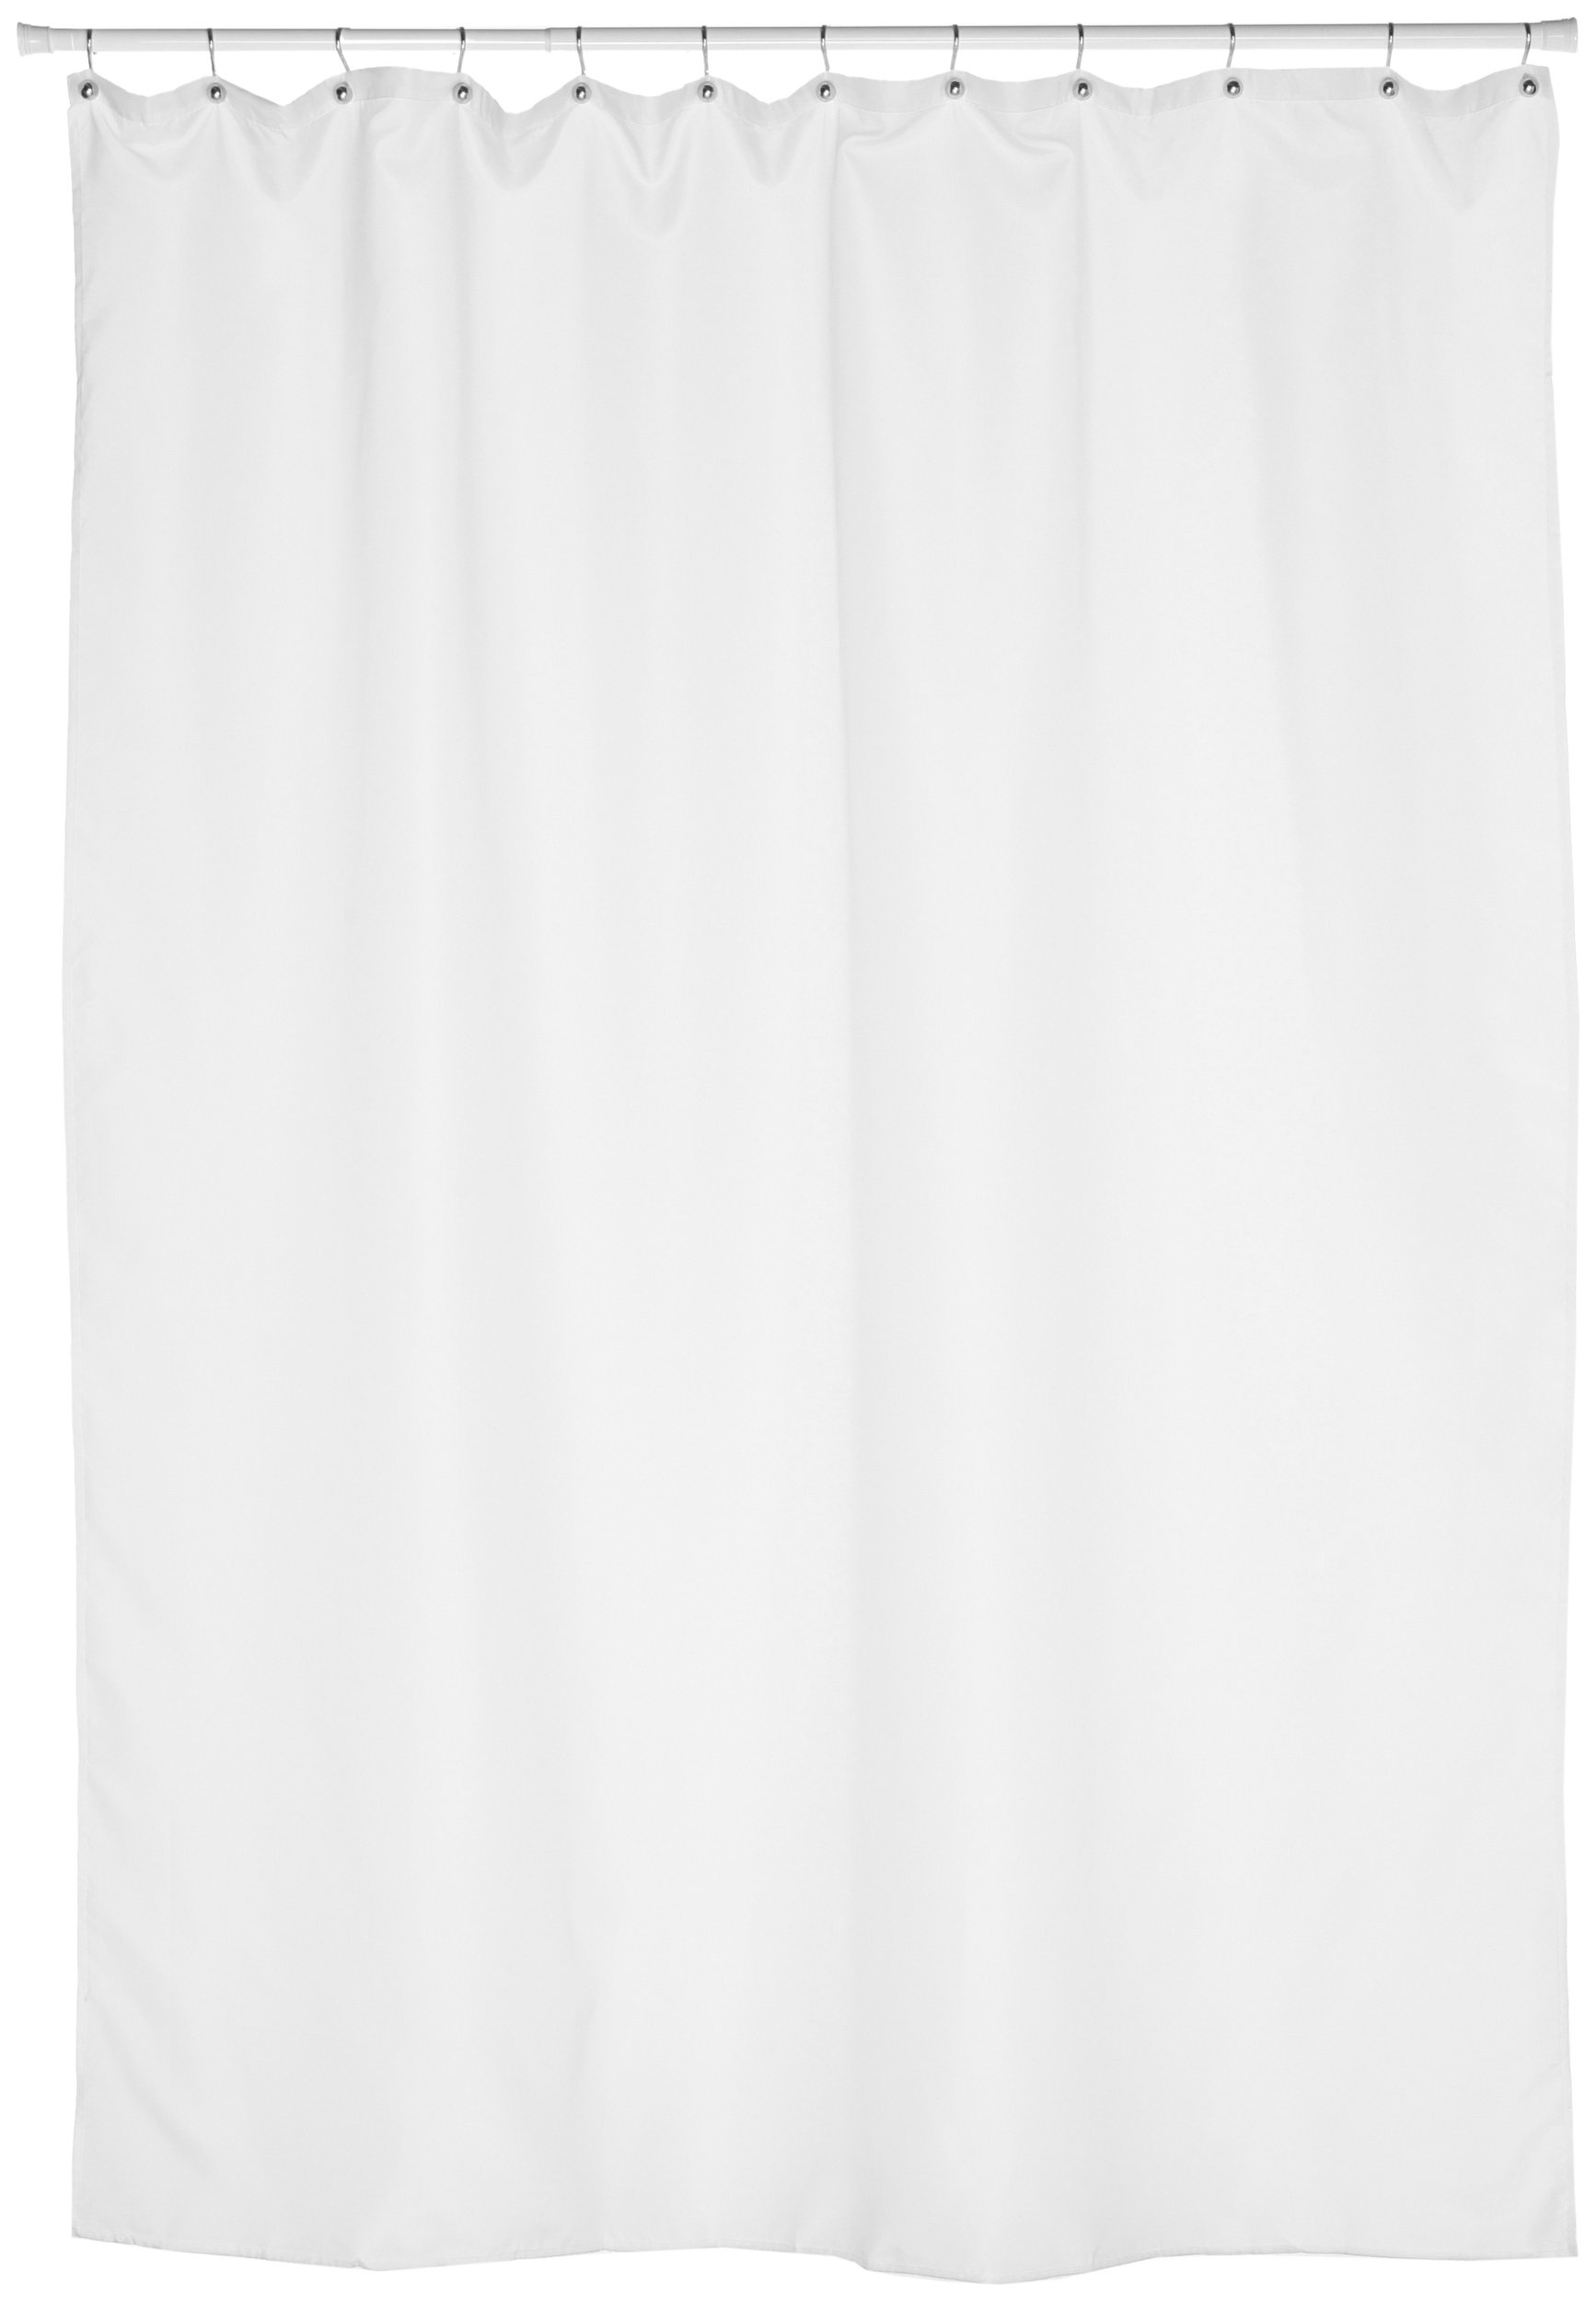 Carnation Home Fashions Fabric Extra Long Shower Curtain Linerextra Long Size Ebay